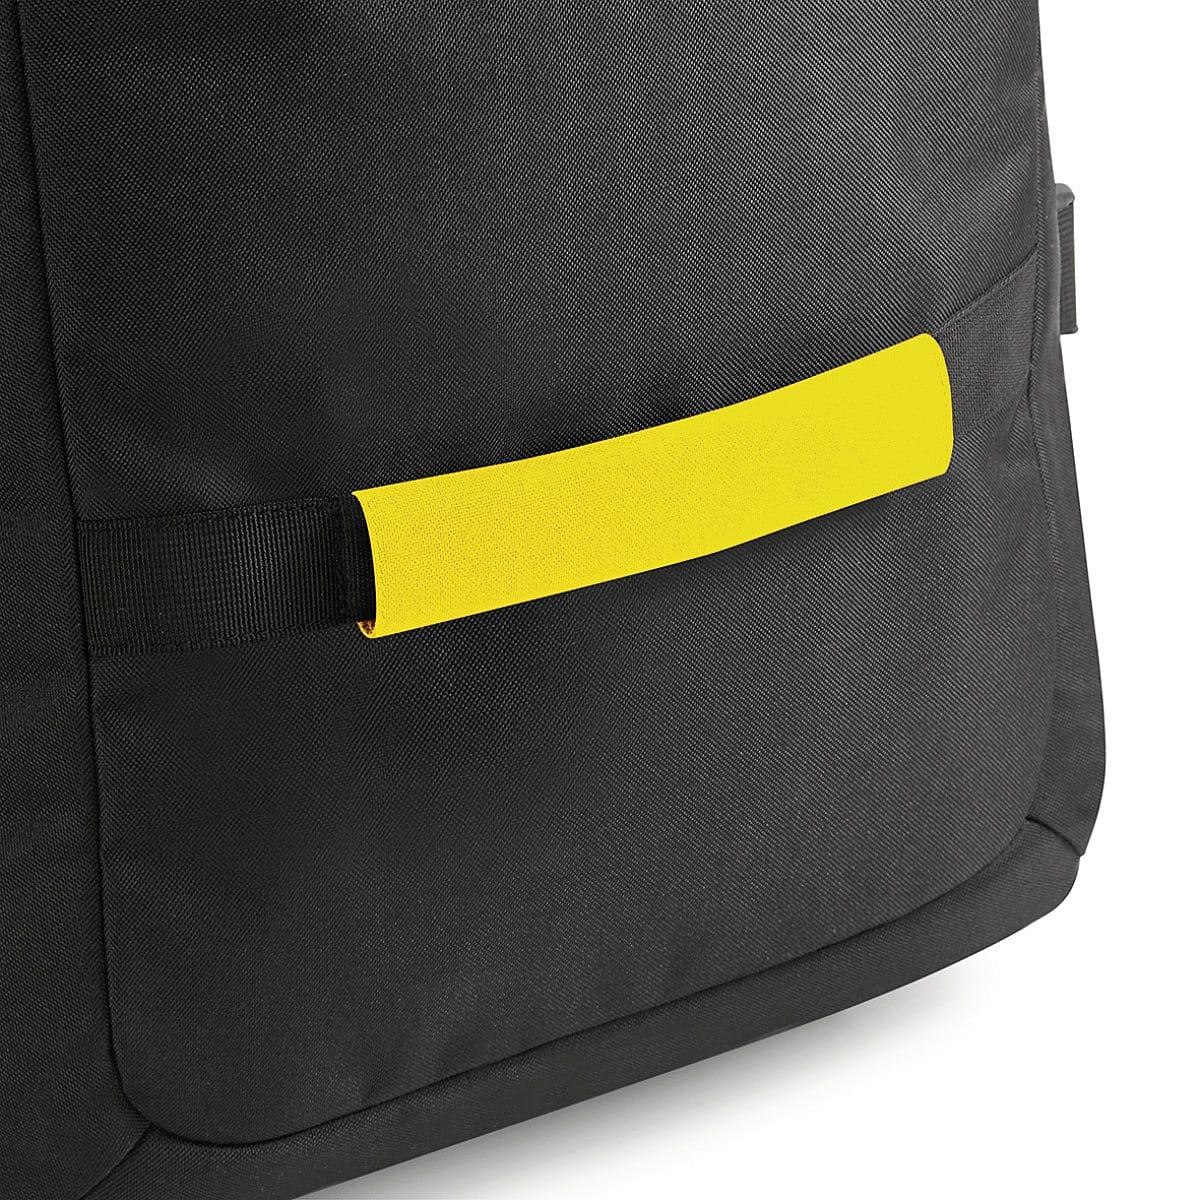 Bagbase Escape Handle Wrap in Yellow (Product Code: BG485)